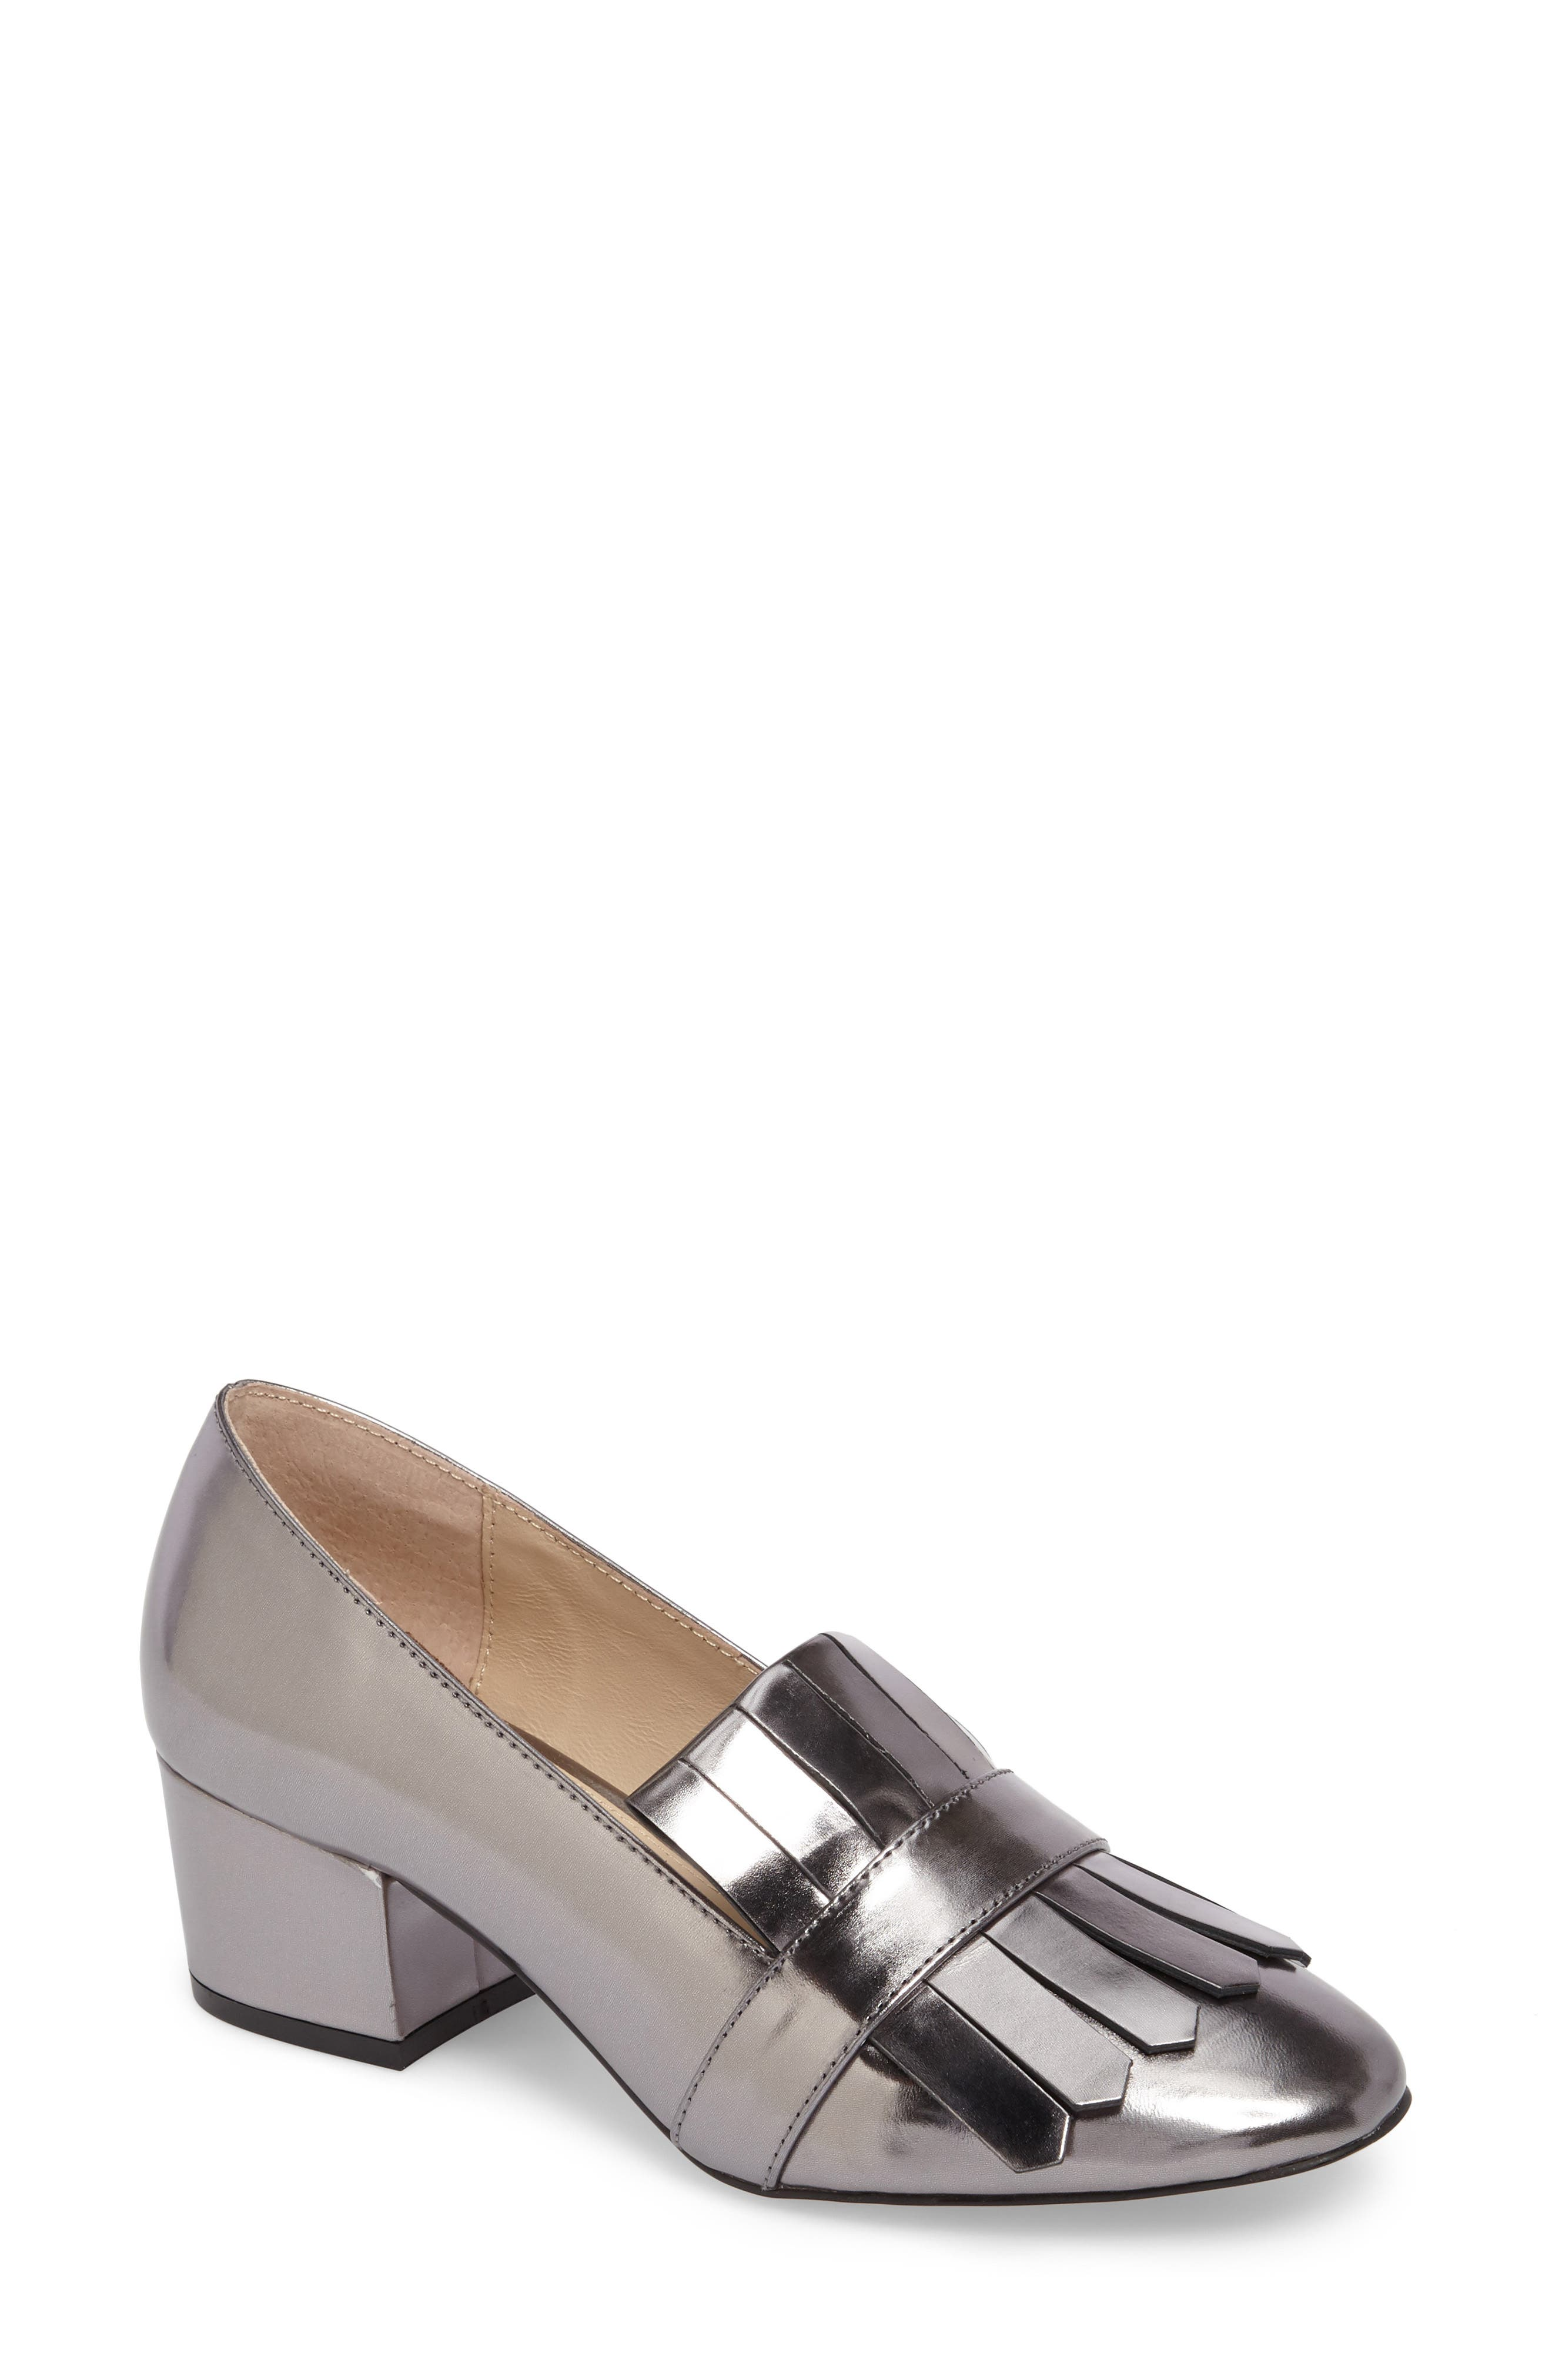 Olive Loafer Pump,                             Main thumbnail 1, color,                             PEWTER LEATHER